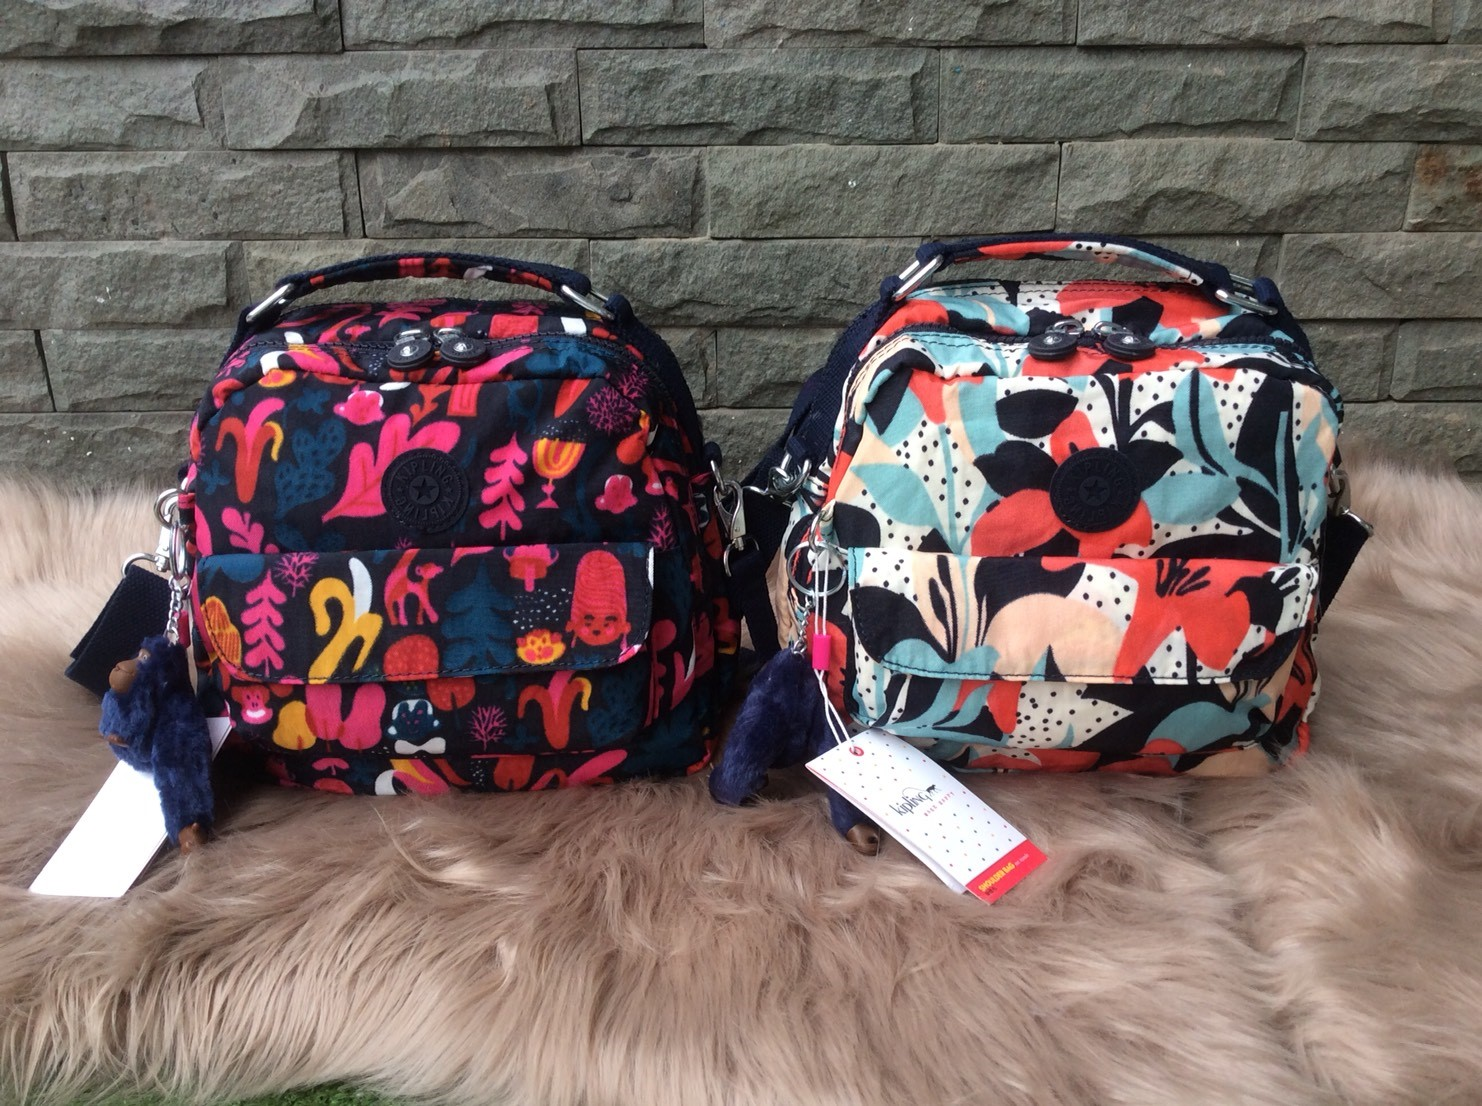 KIPLING CANDY Outlet มี 6 ลายให้เลือกค่ะ *สินค้า outlet